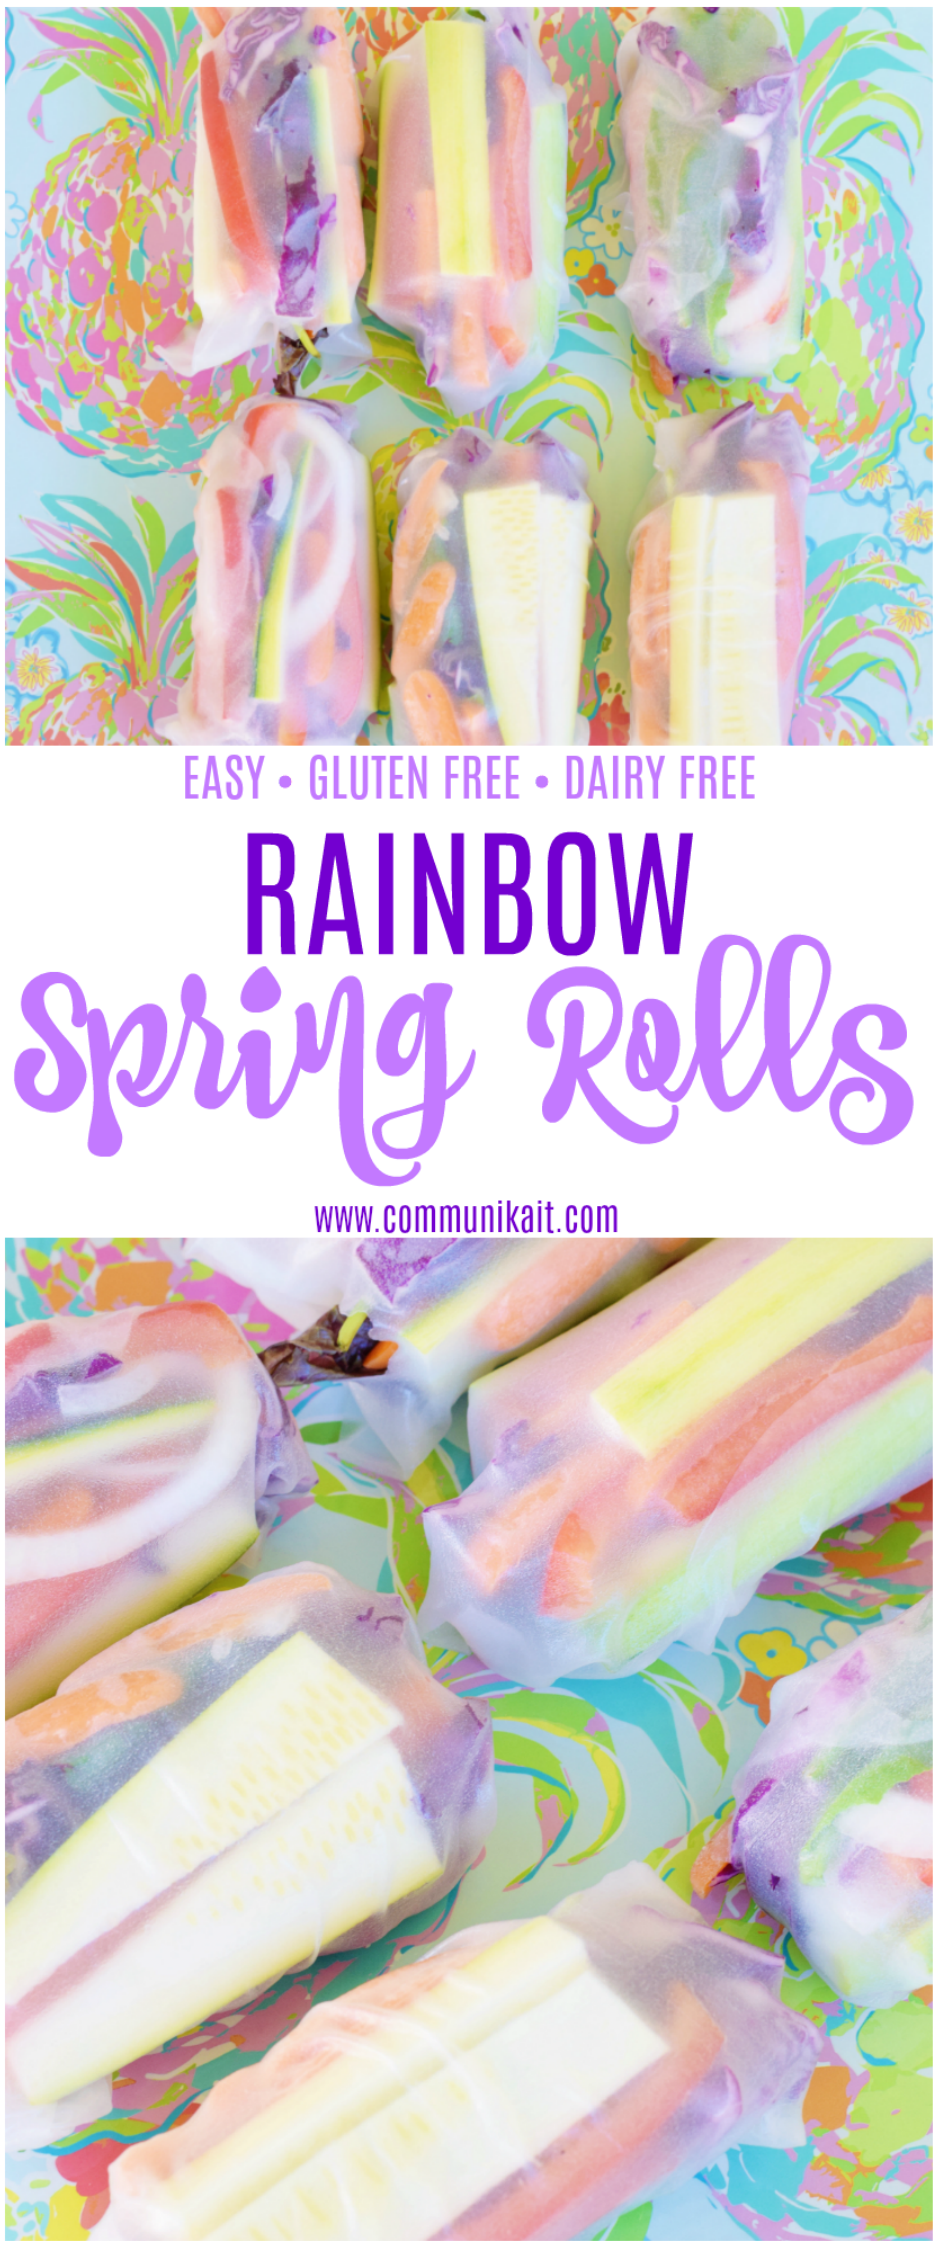 Colorful Vegetable Spring Rolls Recipe - Dairy and Gluten Free - Make At Home - Zucchini, Carrots, Onions, Cucumber, Peppers, Basil, Mint + Mixed Greens - Rainbow Spring Rolls - Communikait